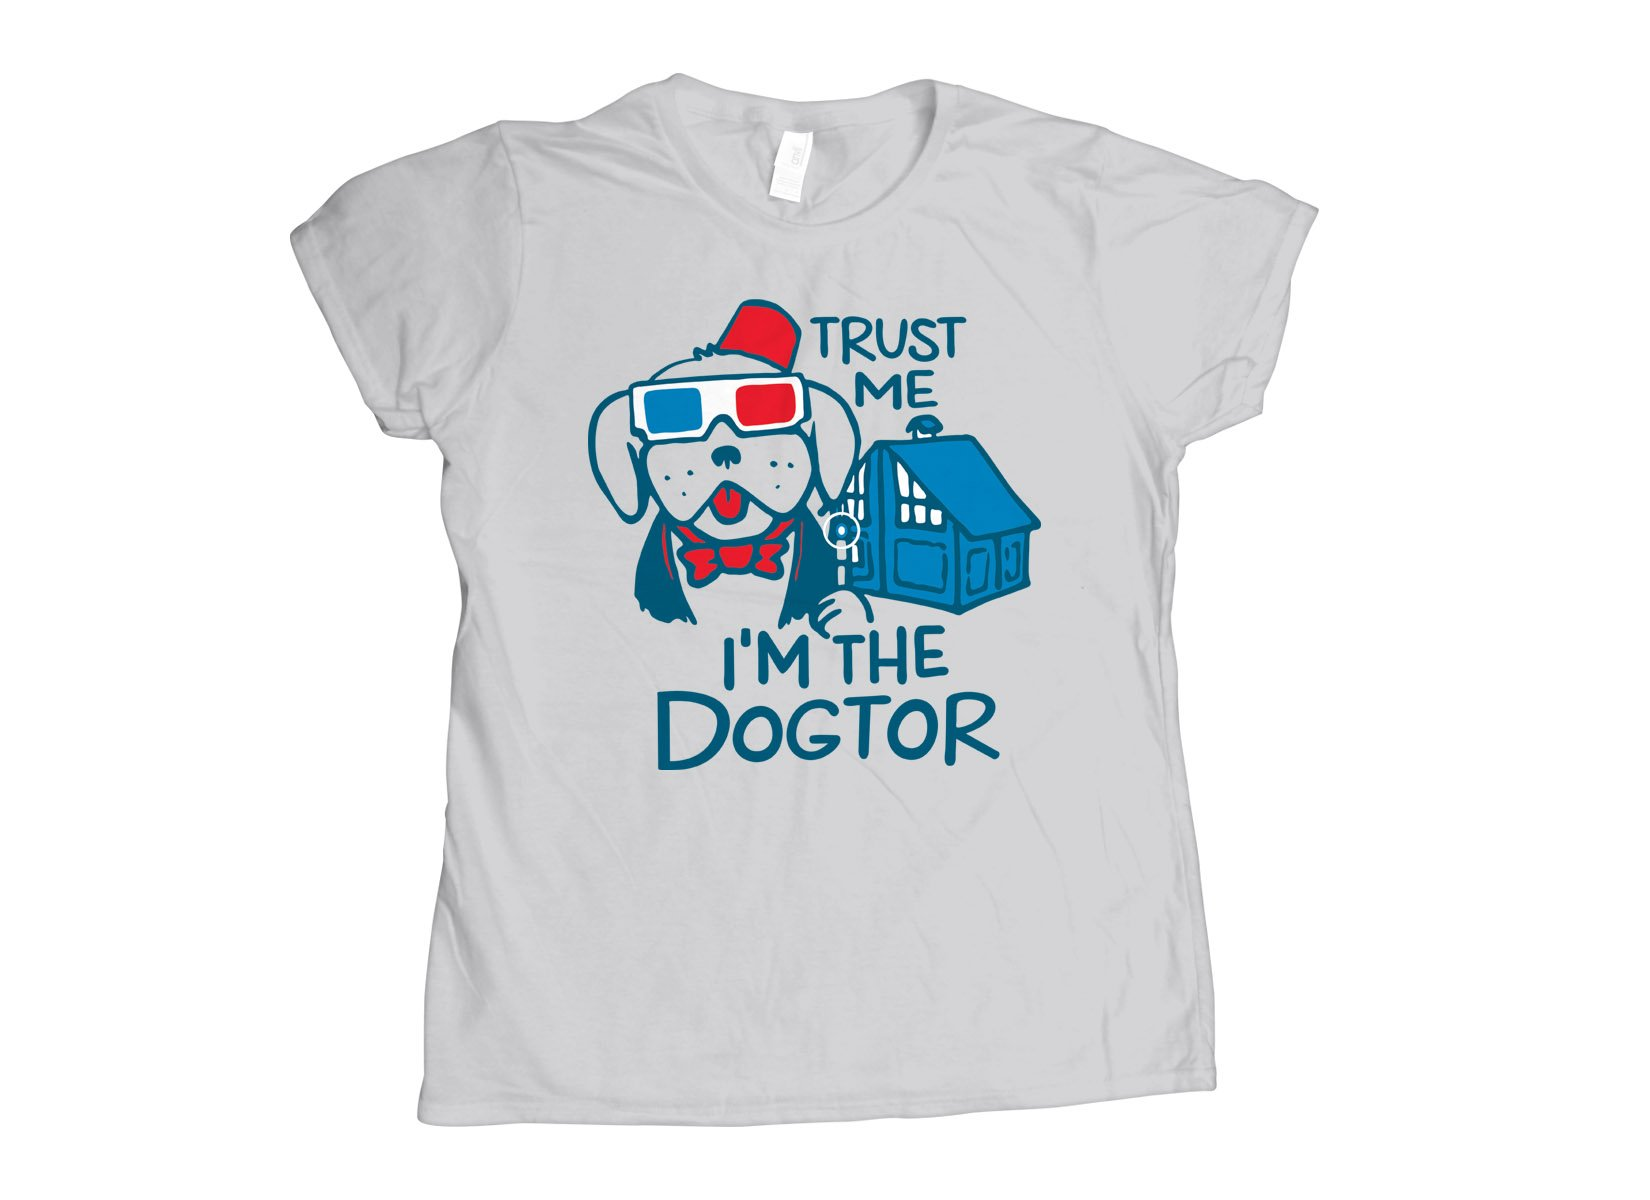 Trust Me, I'm The Dogtor on Womens T-Shirt